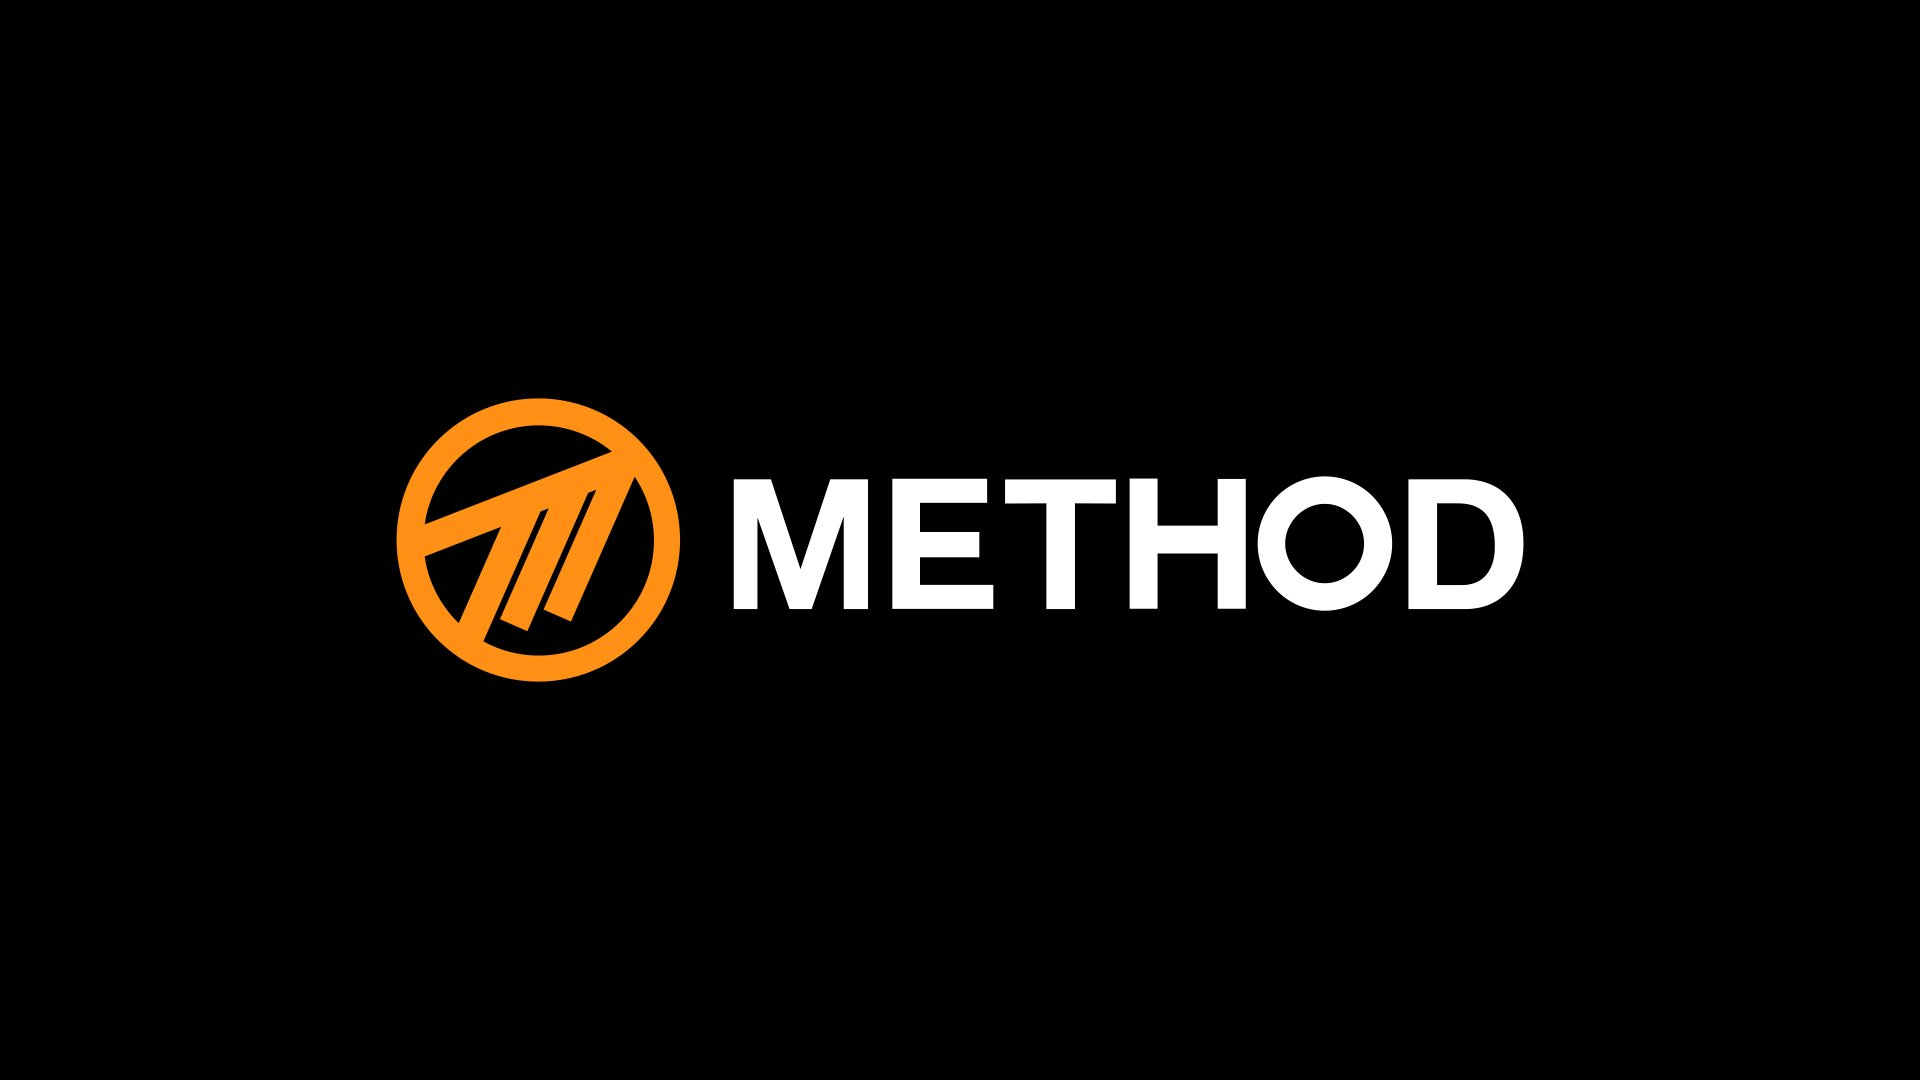 Method - World of Warcraft PVP and World of Warcraft PVE Streams